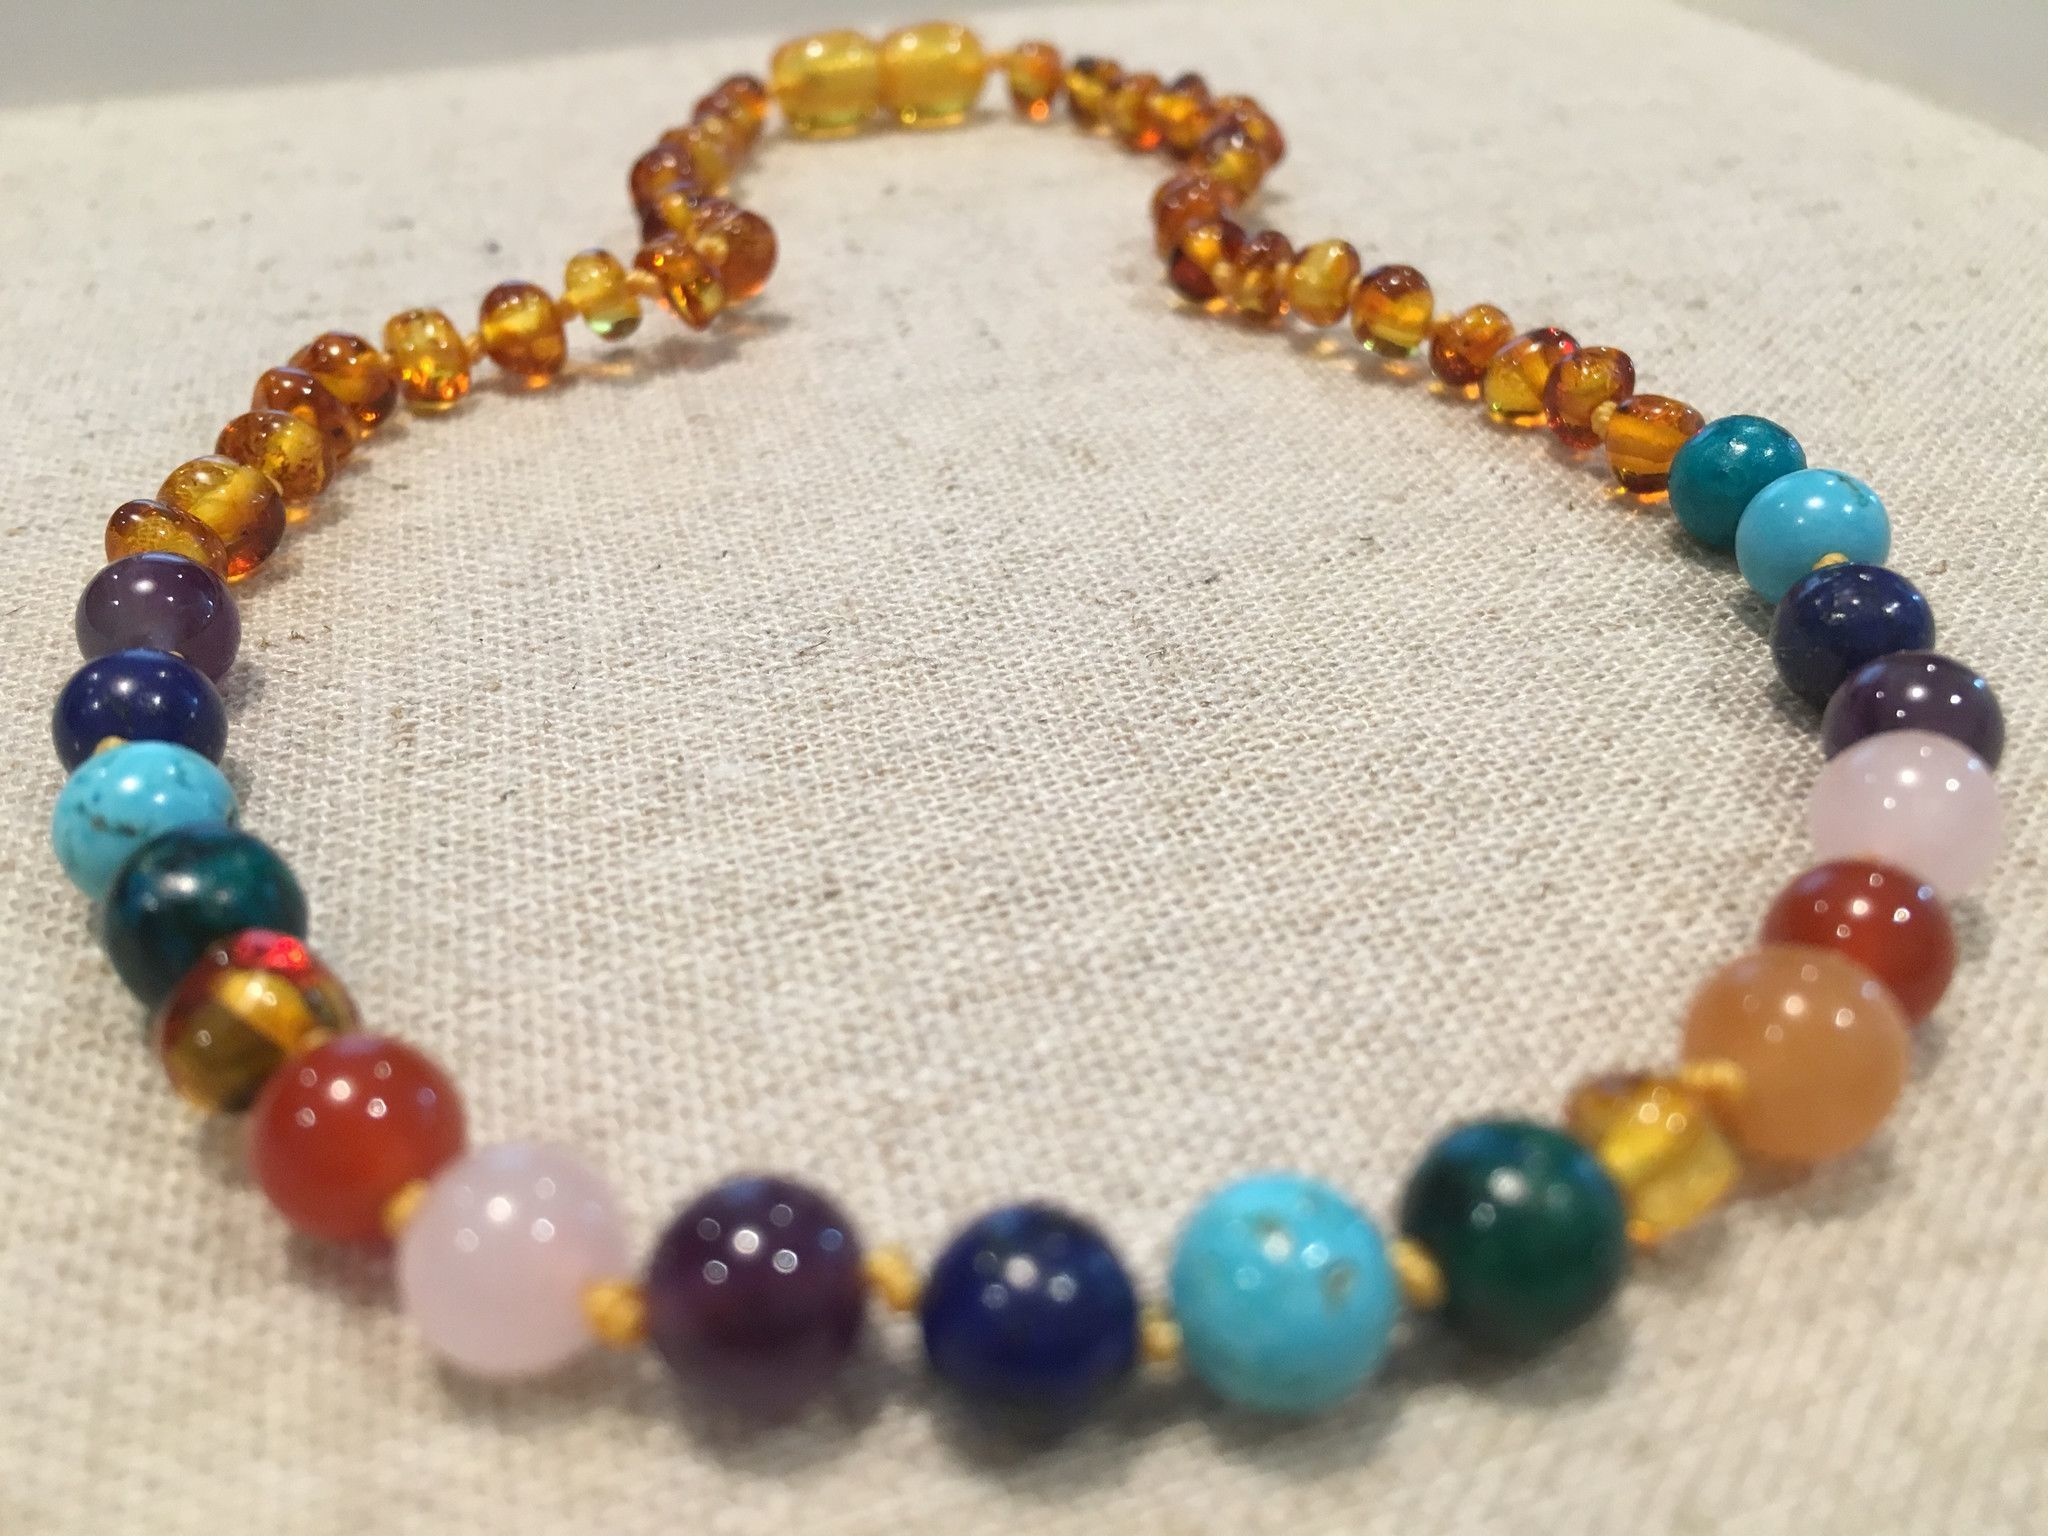 Half Rainbow 12 5 Inch Baltic Amber Necklace Polished